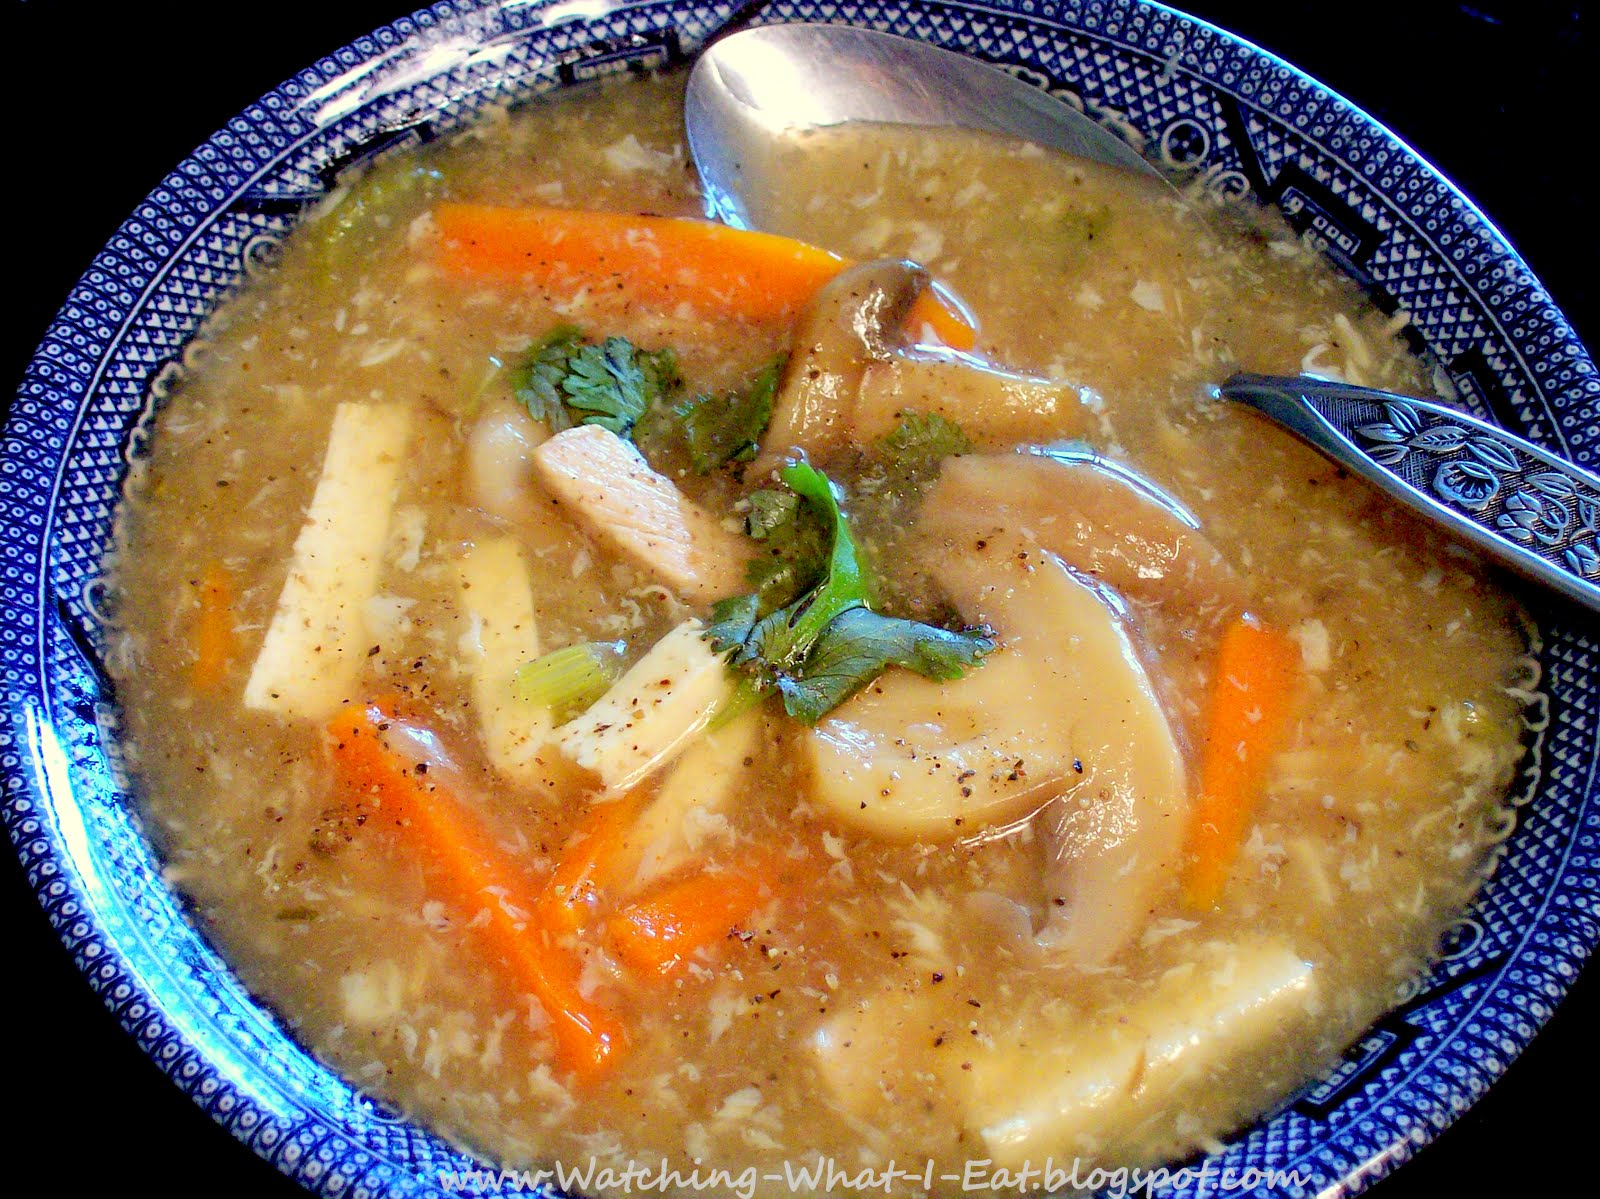 Watching what i eat simple chinese meals so easy to cook asian simple chinese meals so easy to cook asian food at home forumfinder Image collections